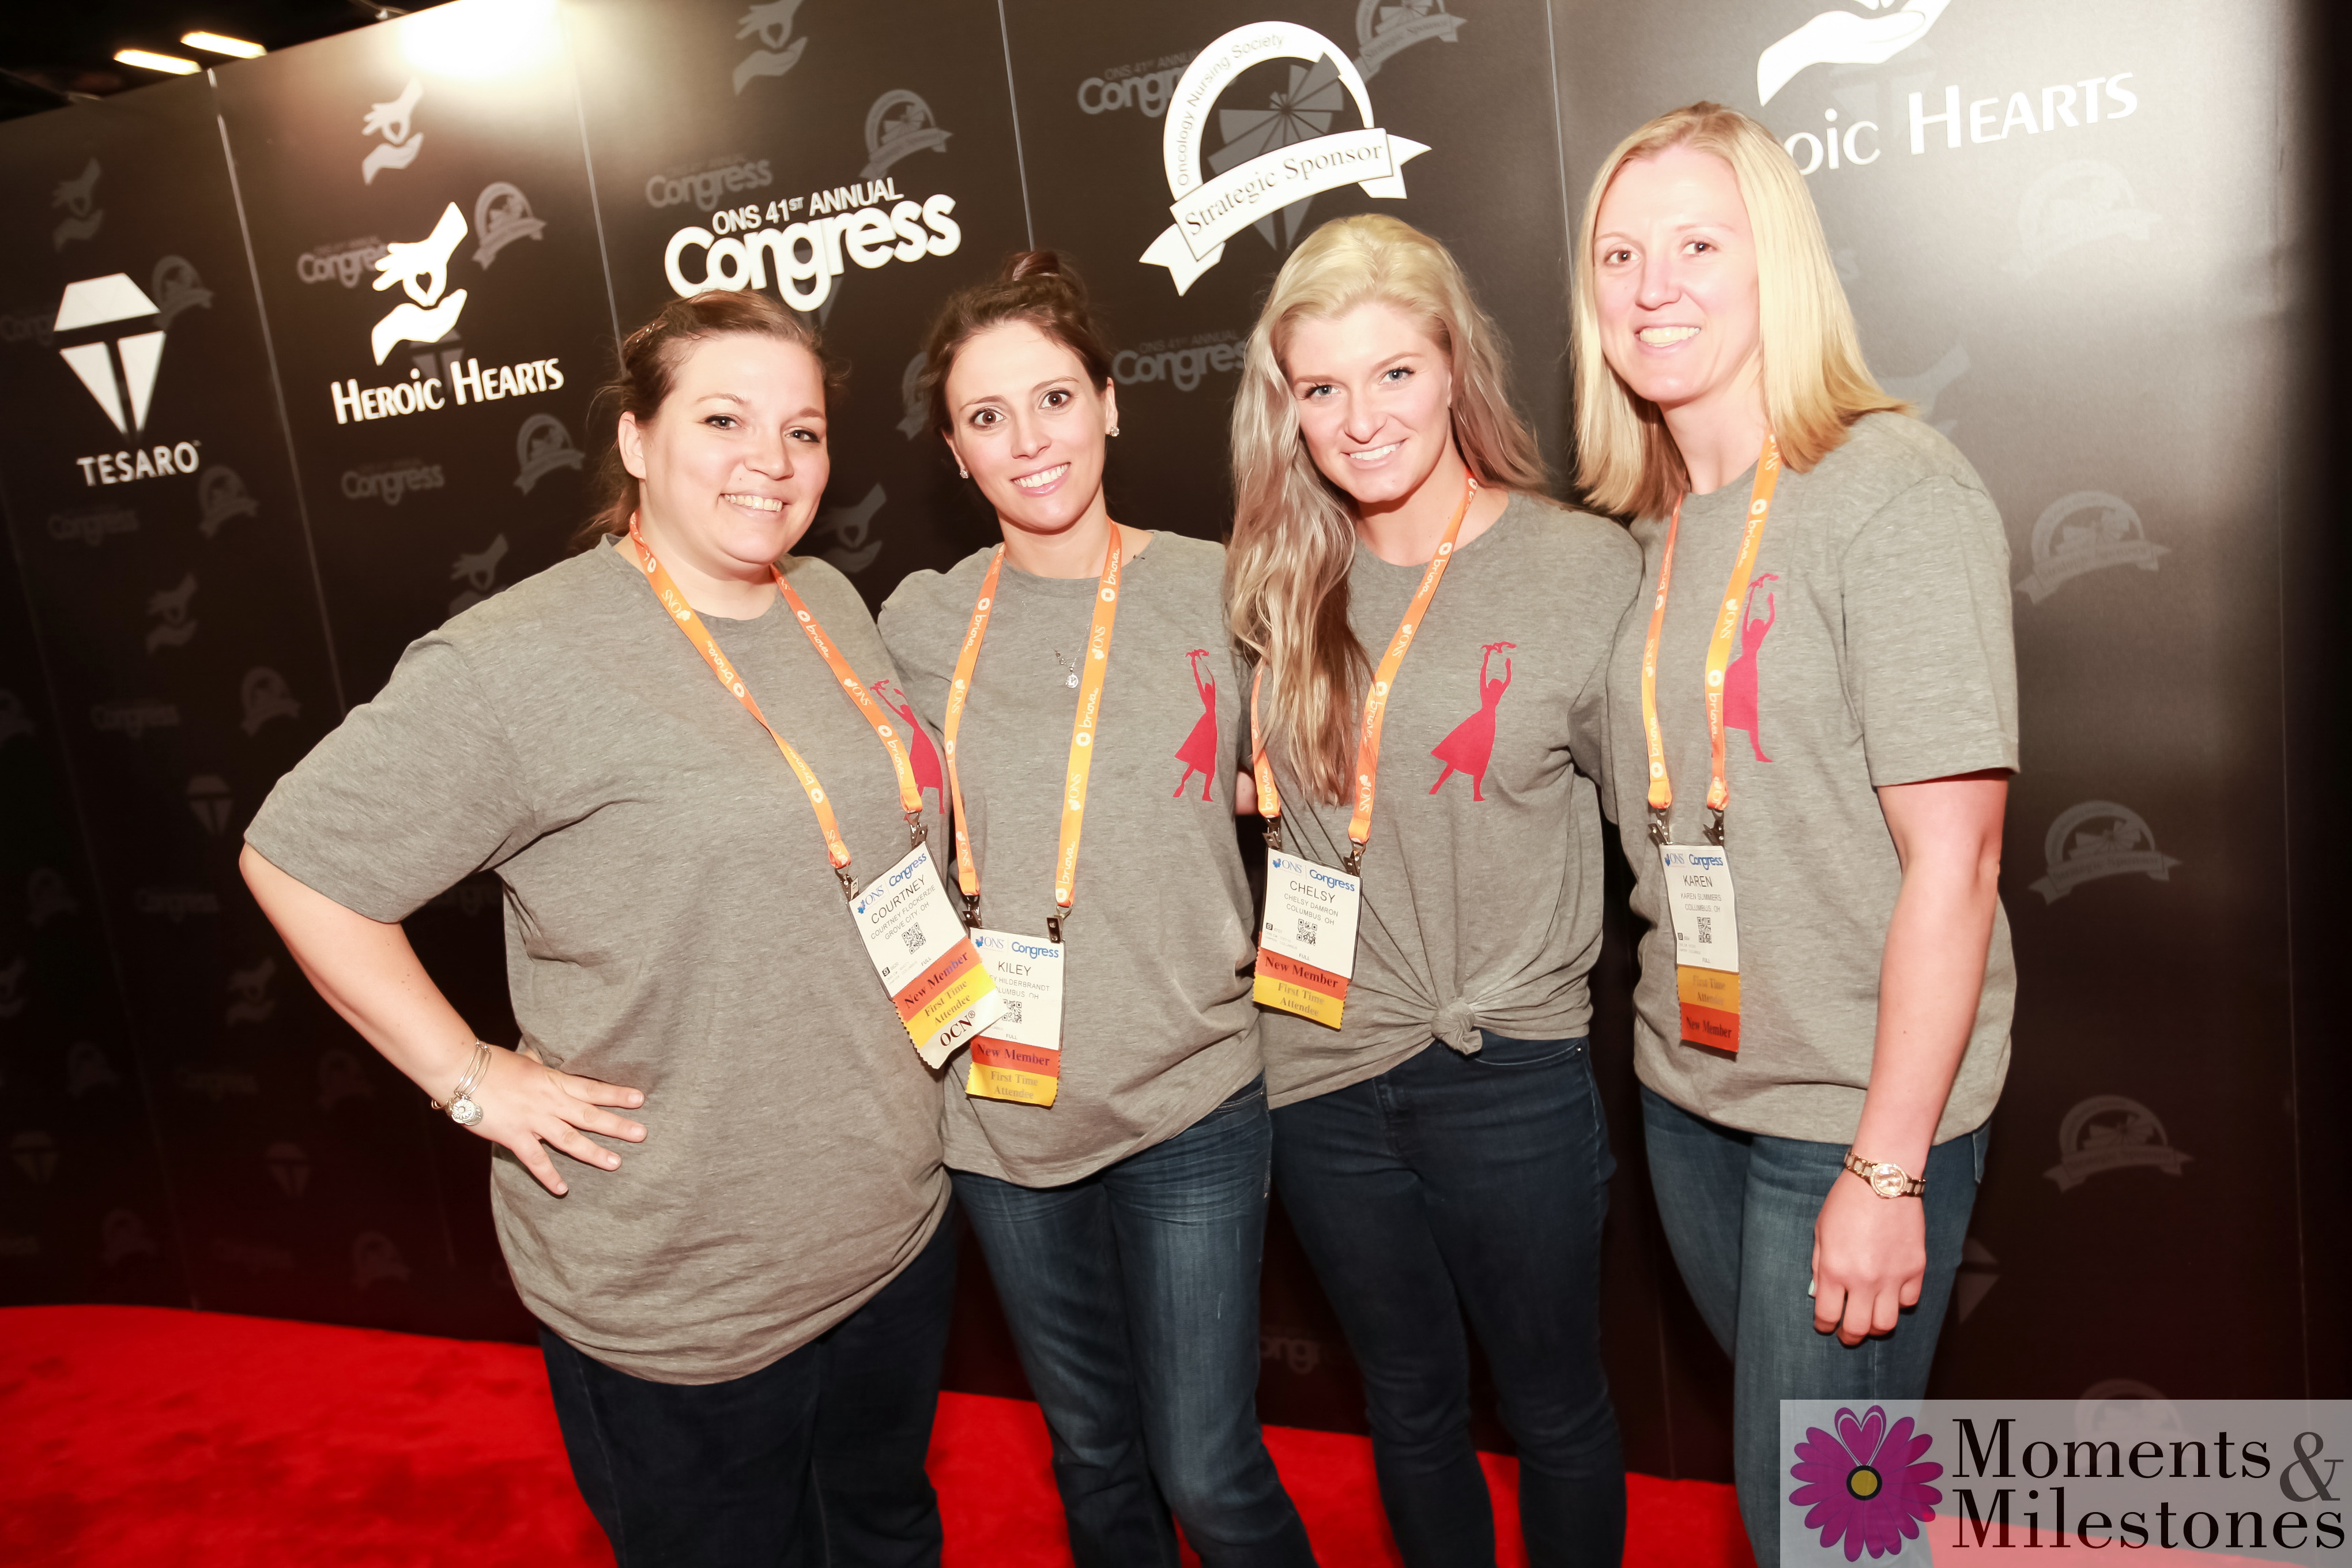 Headshots & Red Carpet Convention Planning, coordinating and Photography